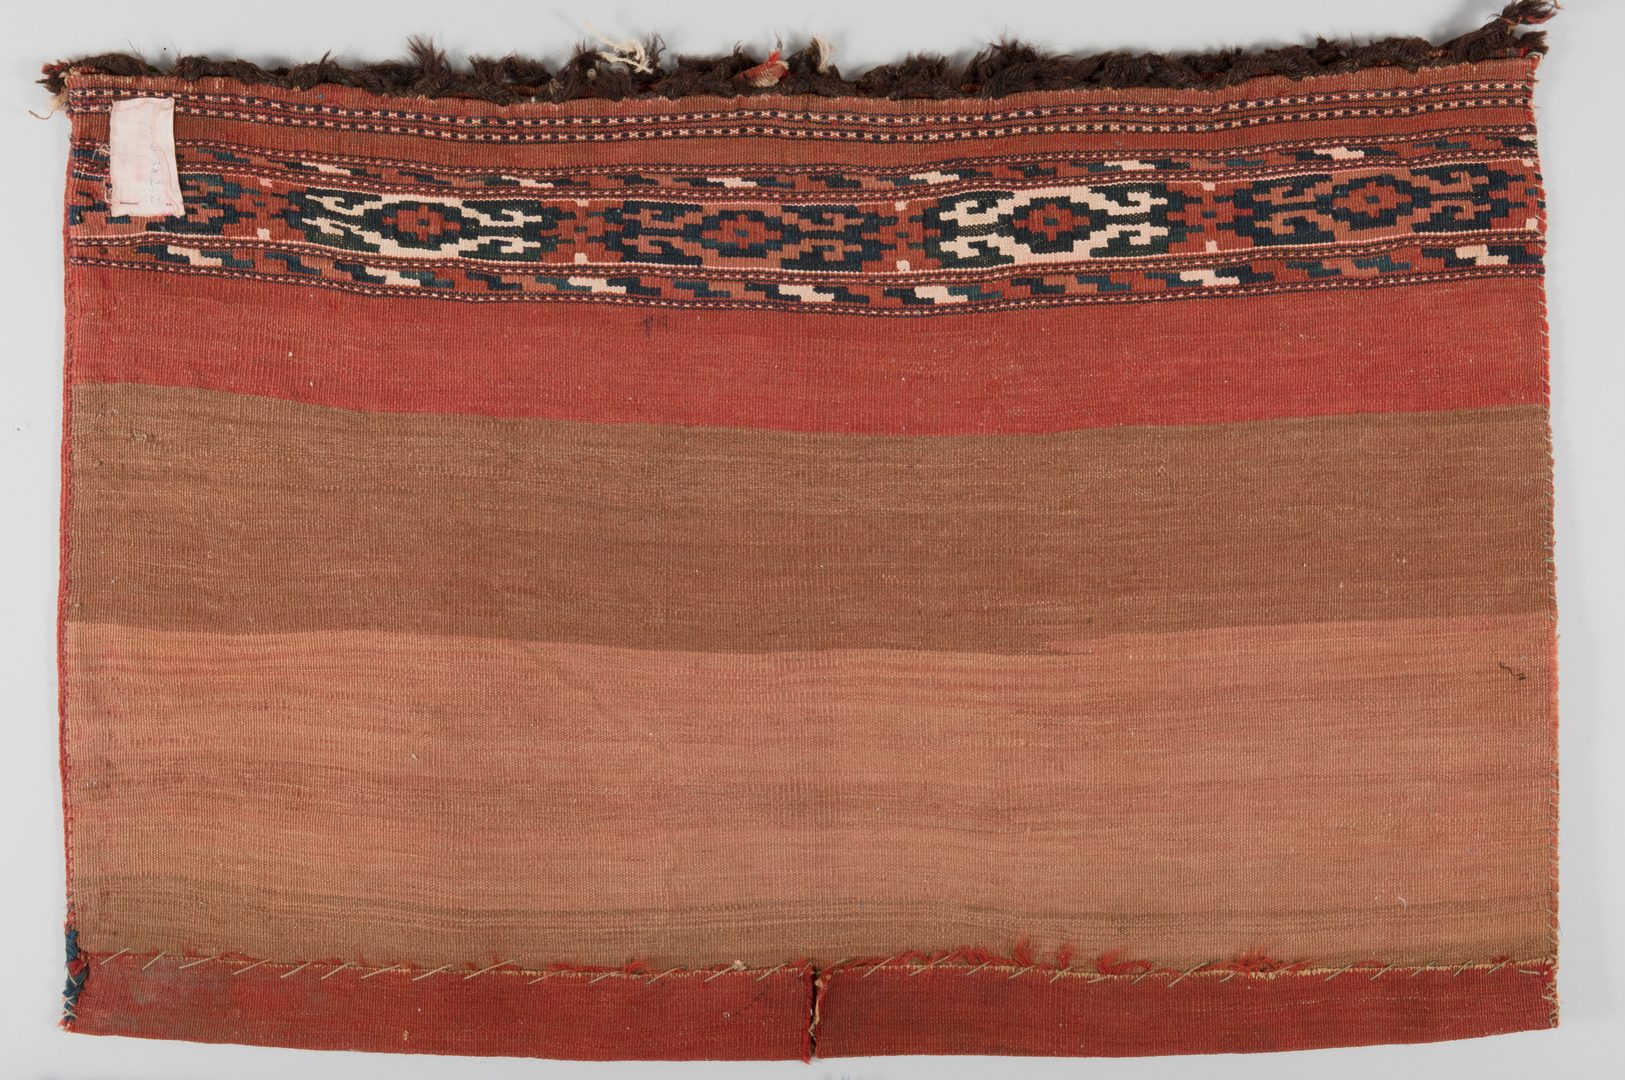 Lot 119: Two Turkoman Bags, early 20th c.